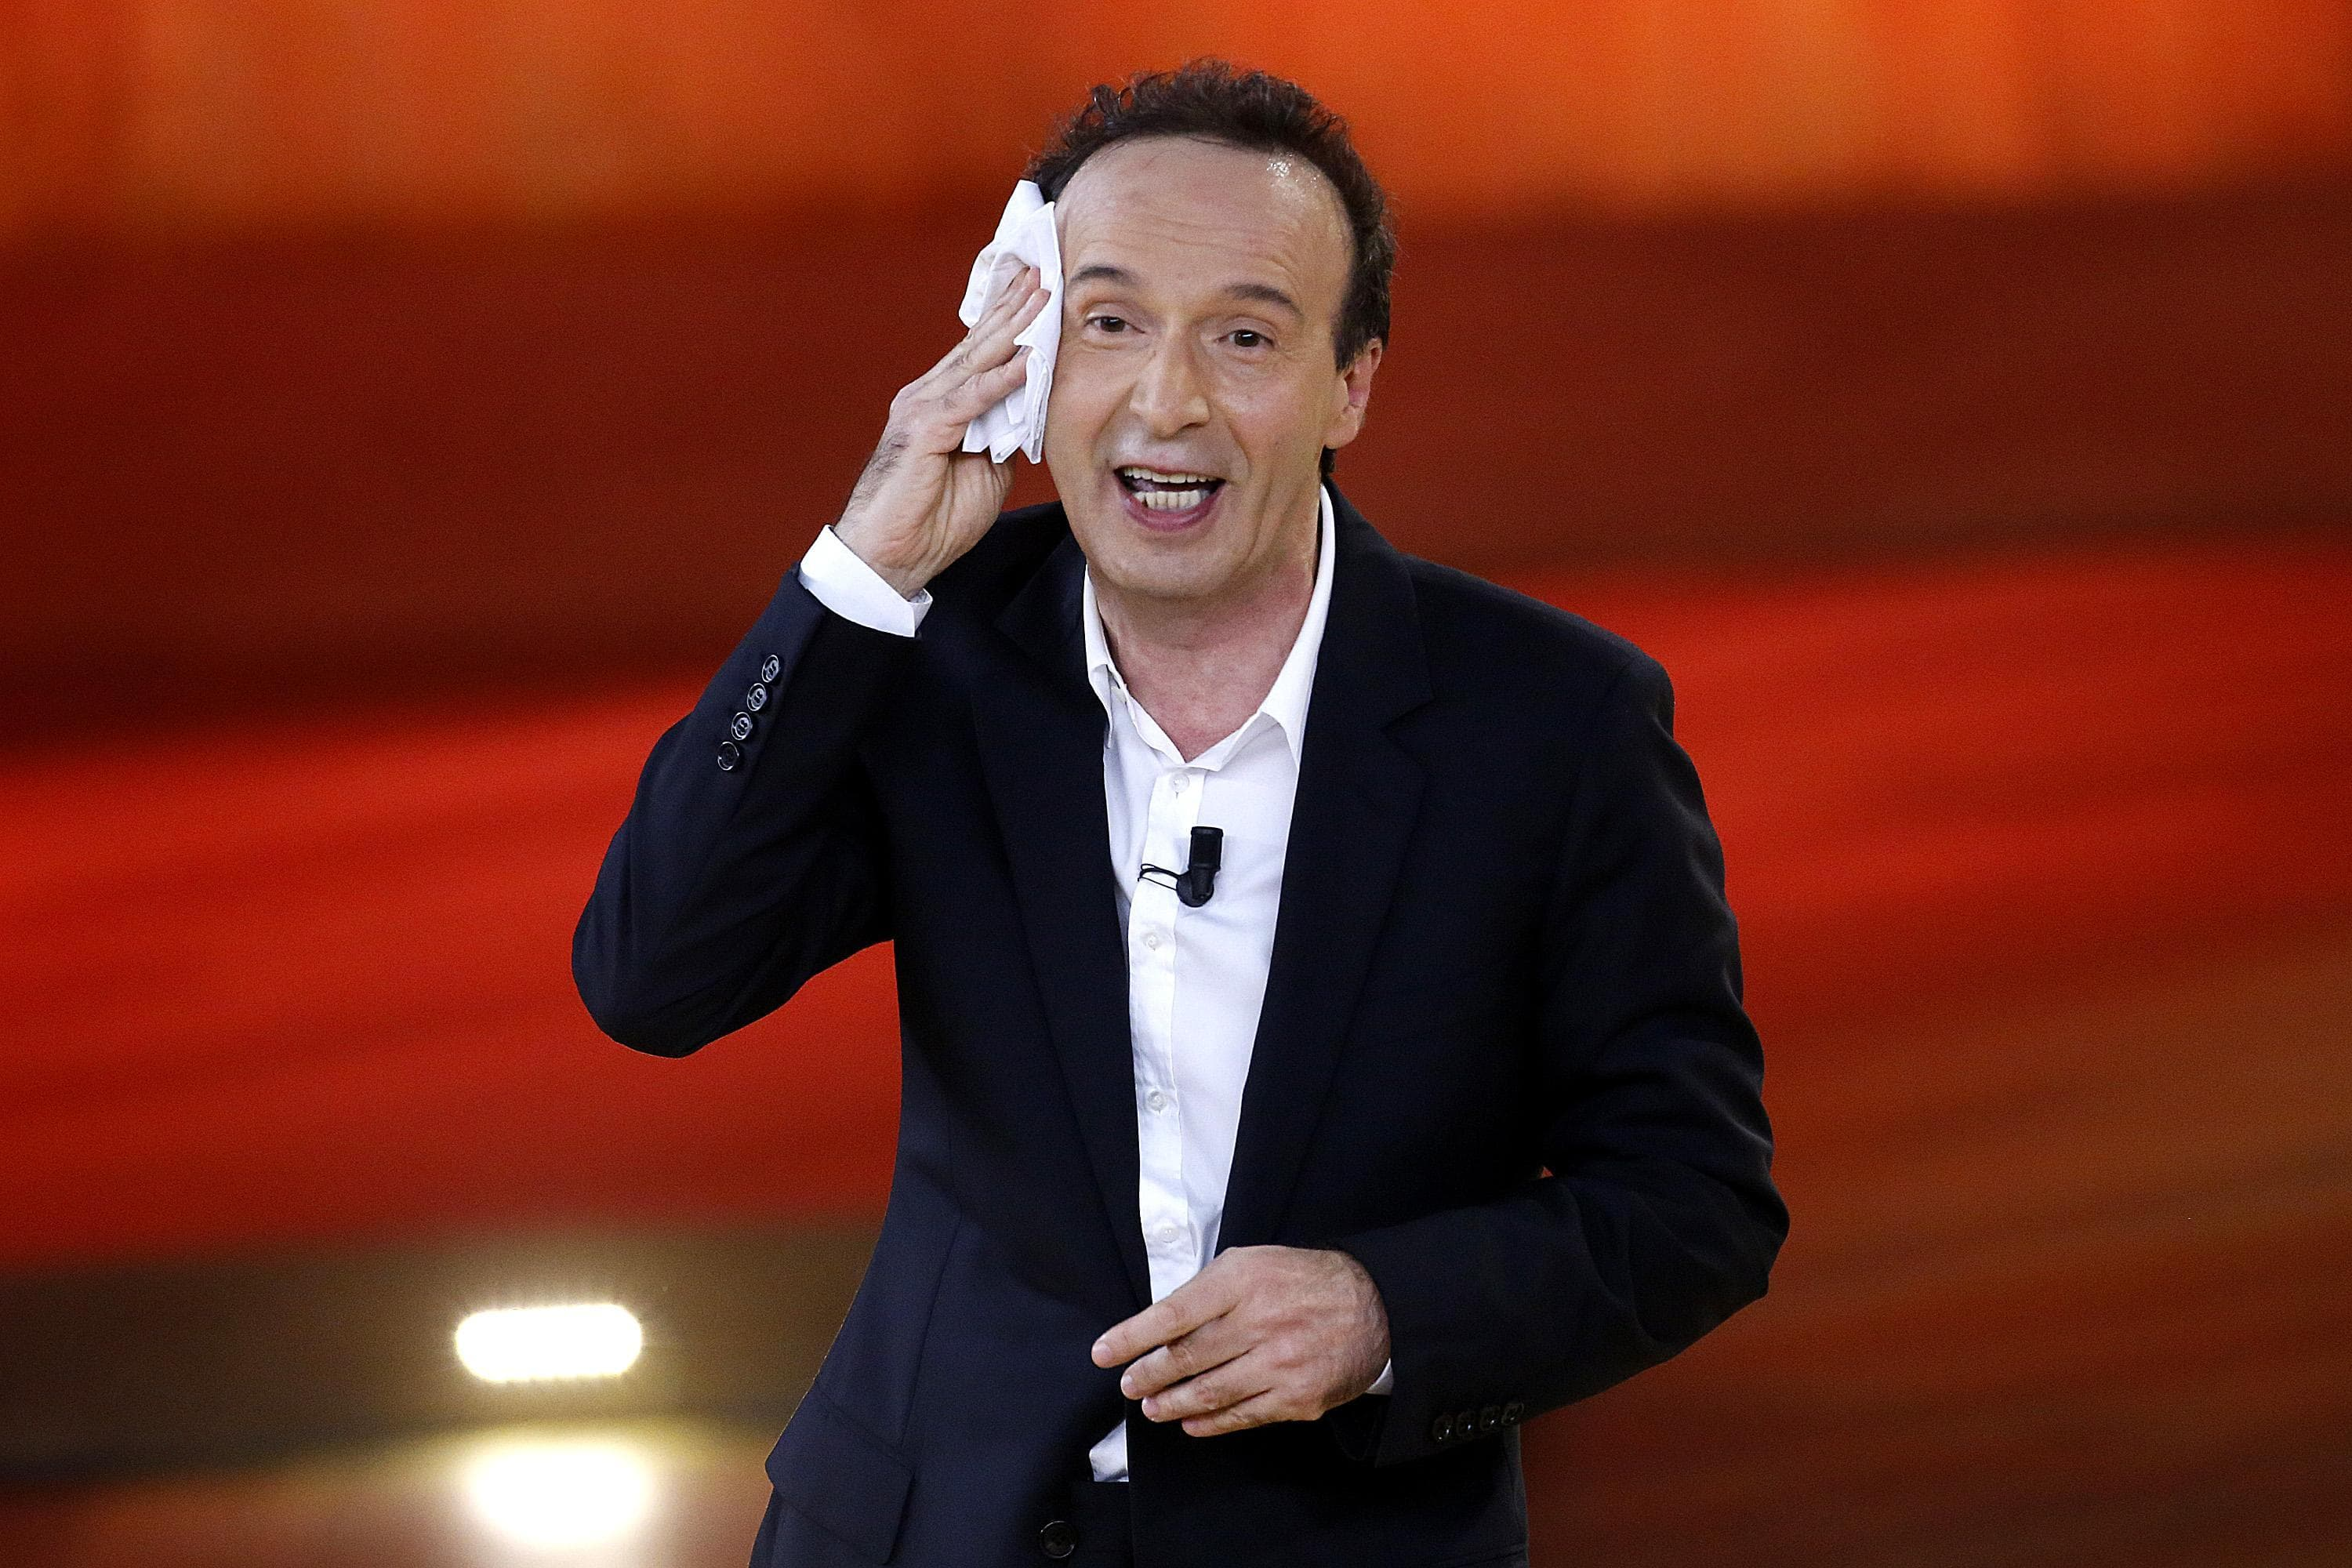 Roberto Benigni Desktop wallpaper